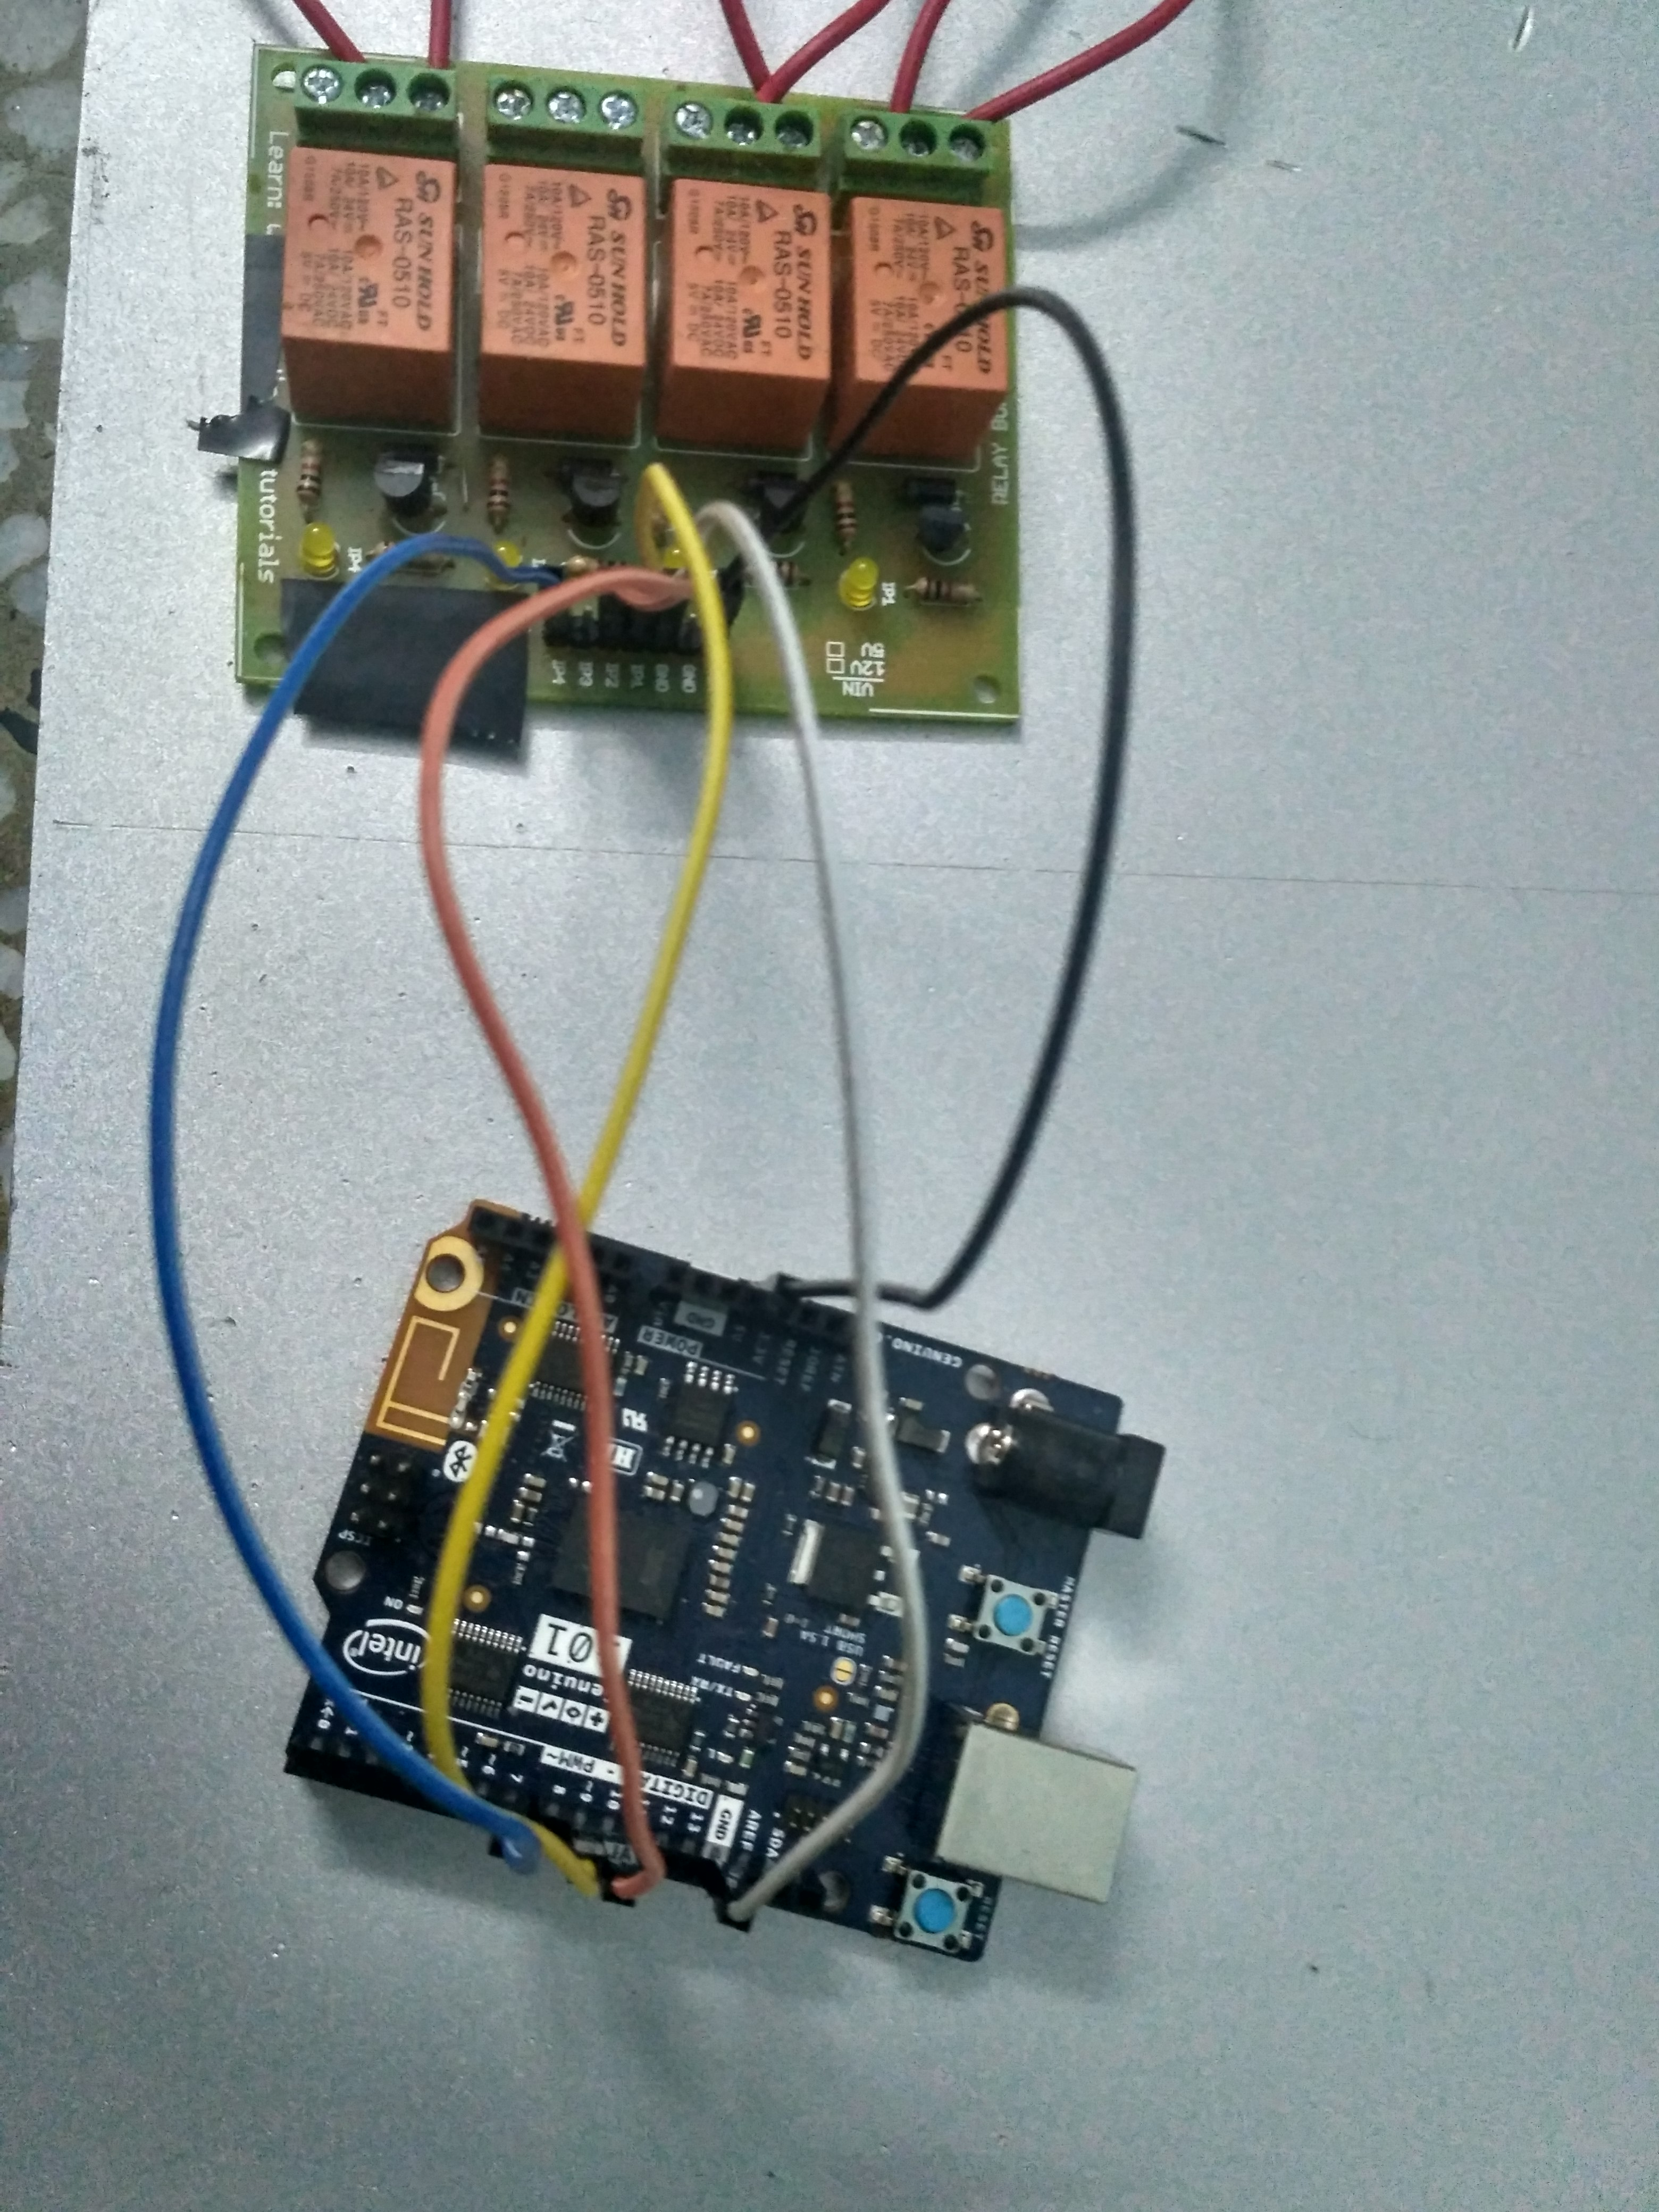 Home Automation With Arduino 101 Using Bluetooth Low Energy Wiring Relay Board Img 20171228 205038 Hdr Fga7fizle9